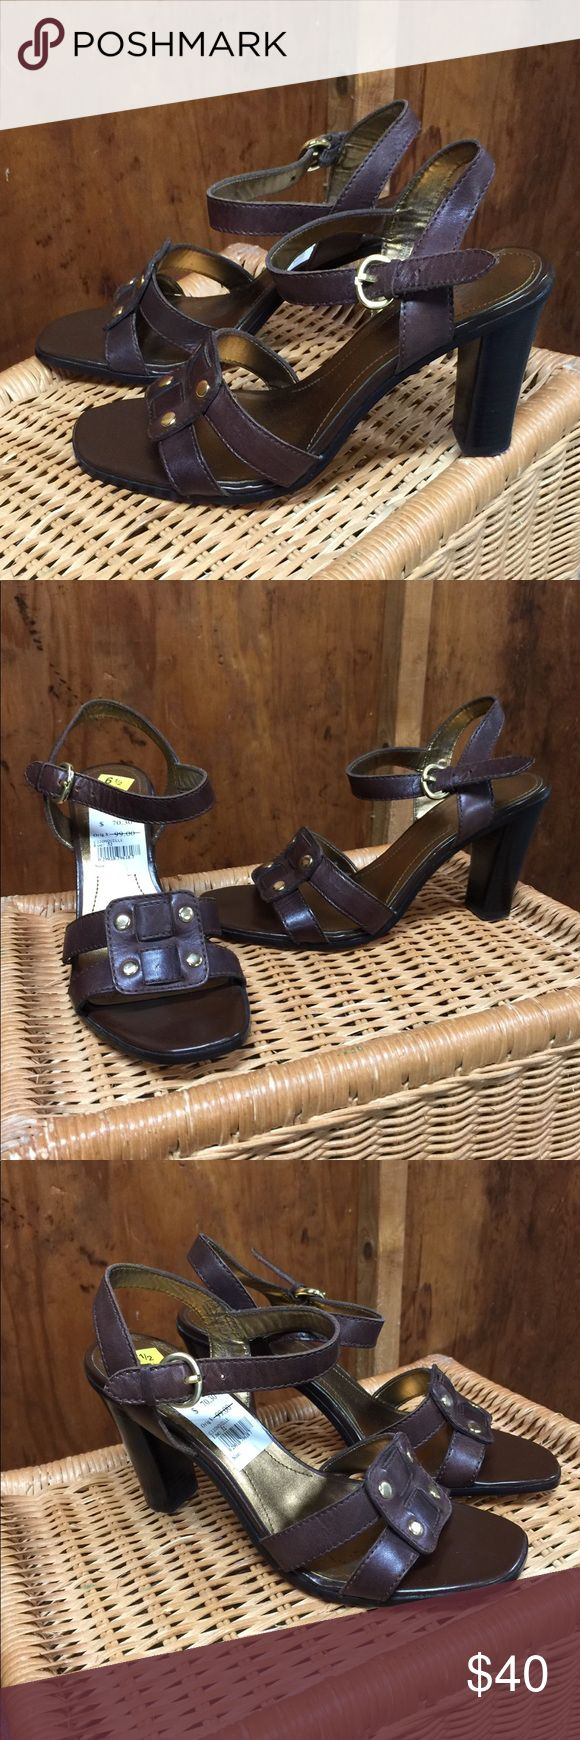 "Circadian Joan & David Heeled Sandals Size 6 1/2 Beautiful high heel sandals by Joan & David, brown leather uppers, man made soles. Never worn. Tags still in place. Size 6 1/2 M 3 1/4"" heels Please make offer. Thank you! Circa Joan & David Shoes Heels"